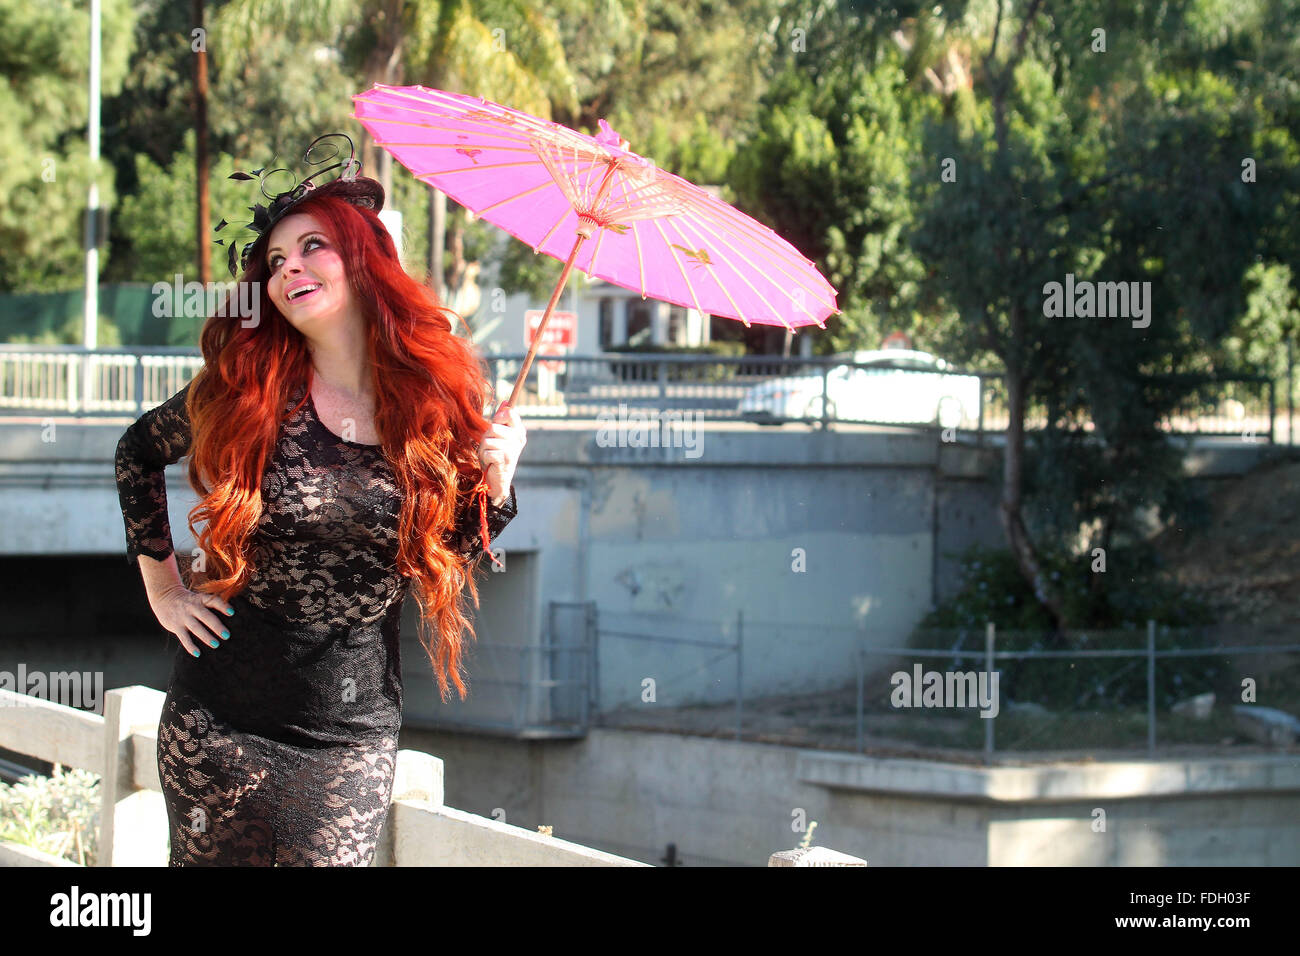 Phoebe Price on her way to a New Years Eve Party wearing a see-thru ...